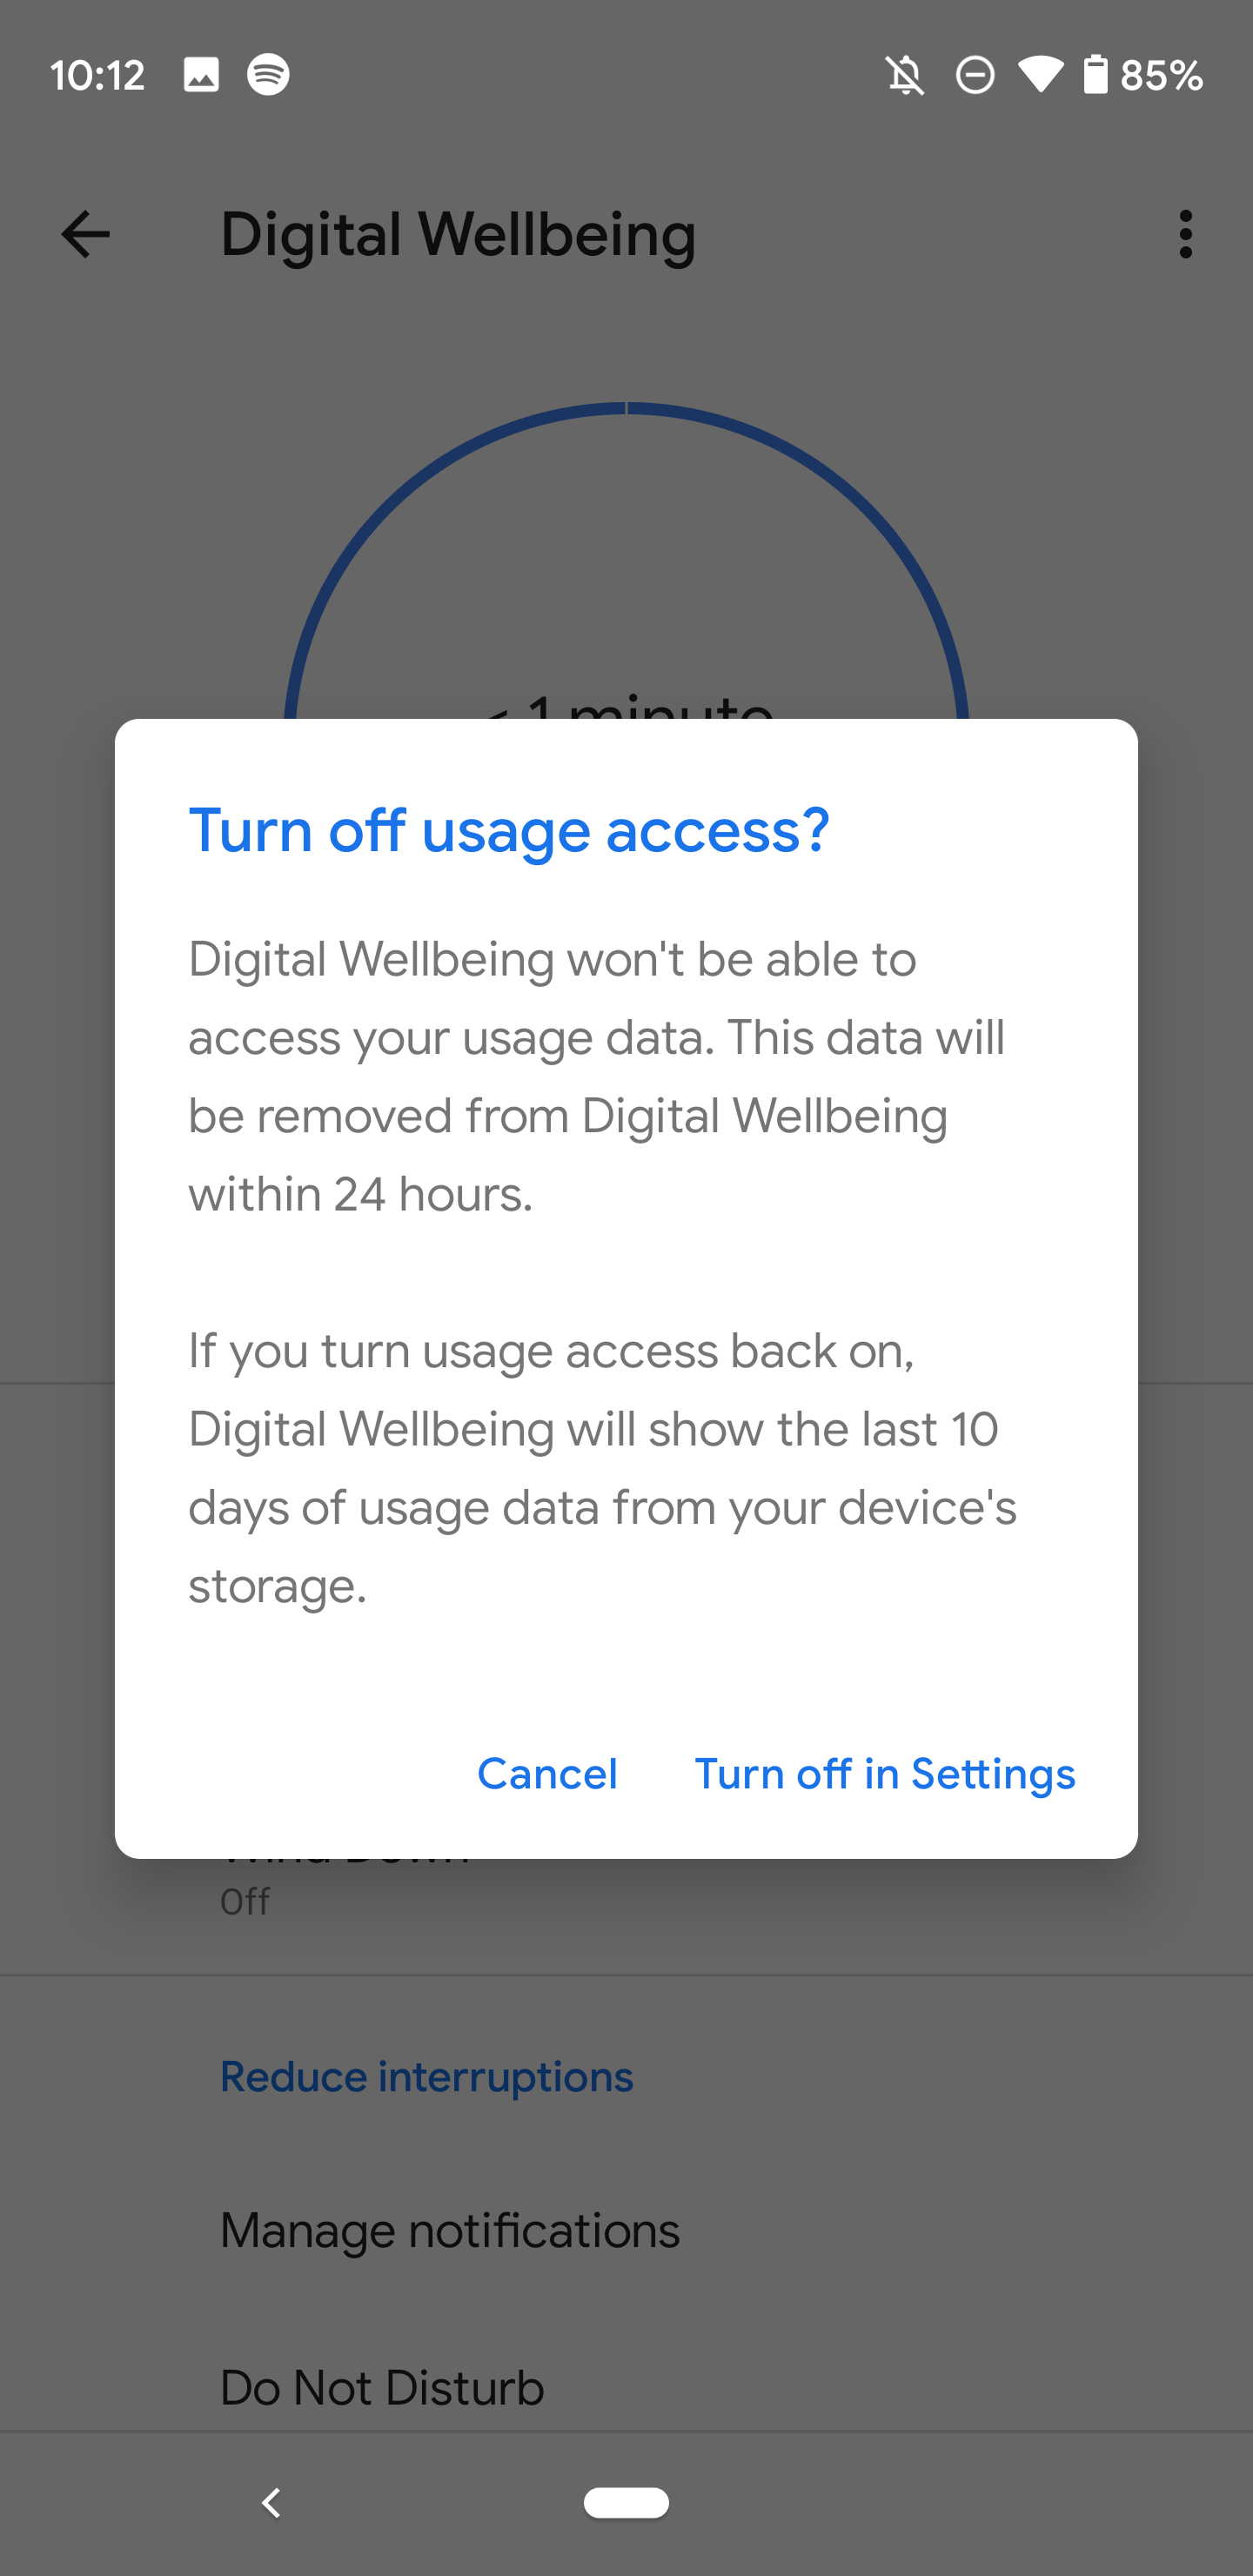 How to turn off Digital Wellbeing on Google Pixel devices